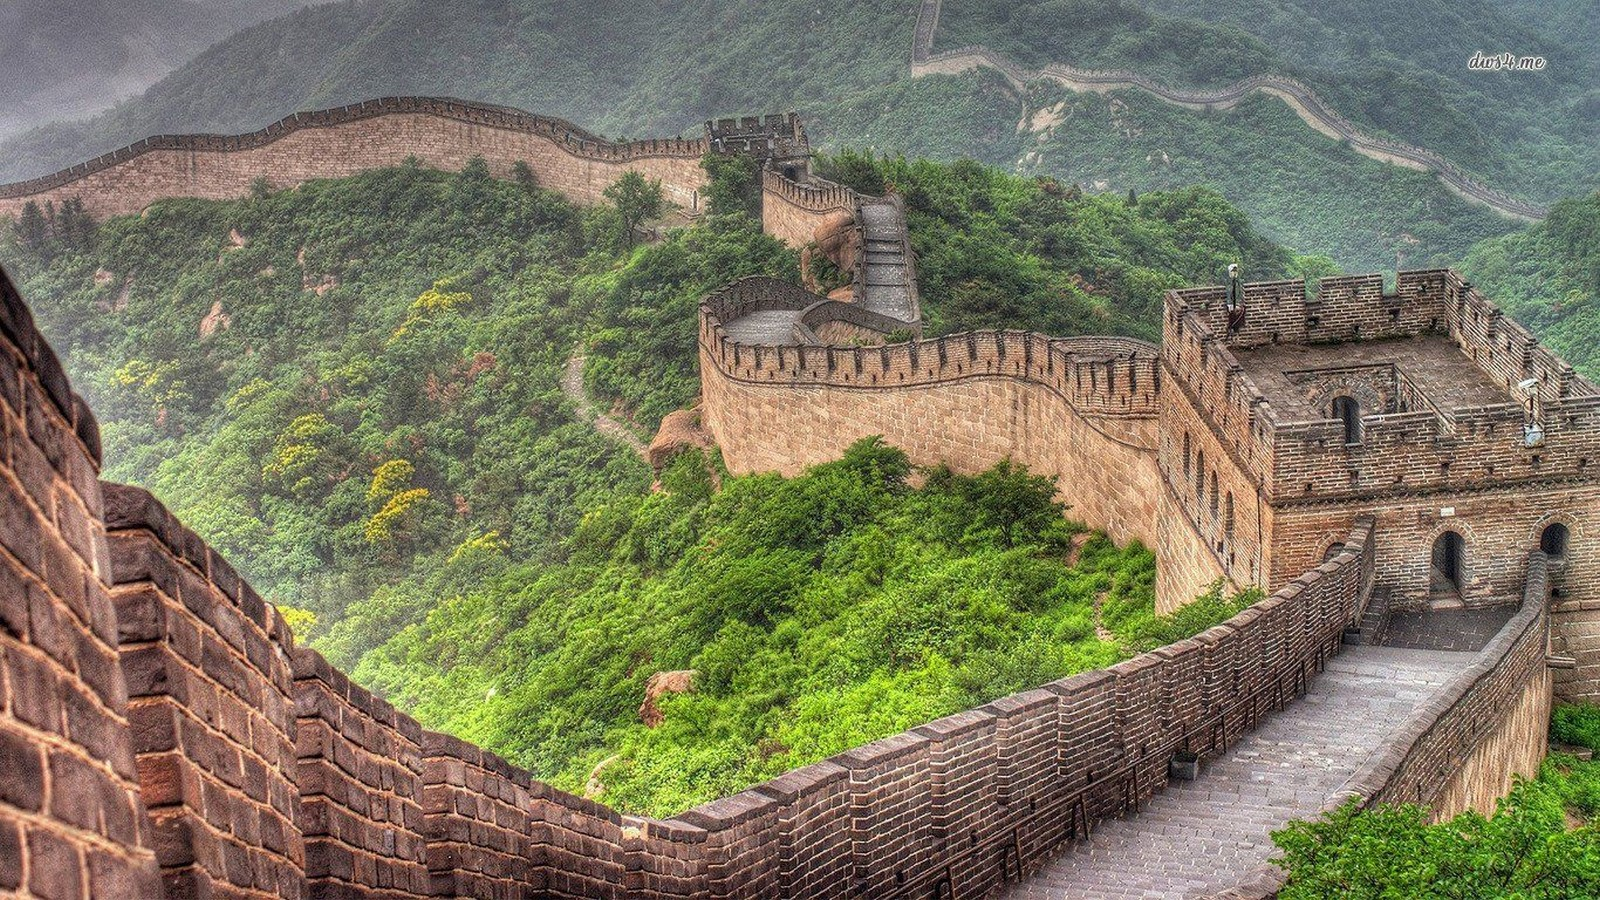 Historicity in Architecture - The Great Wall of China - Sheet1